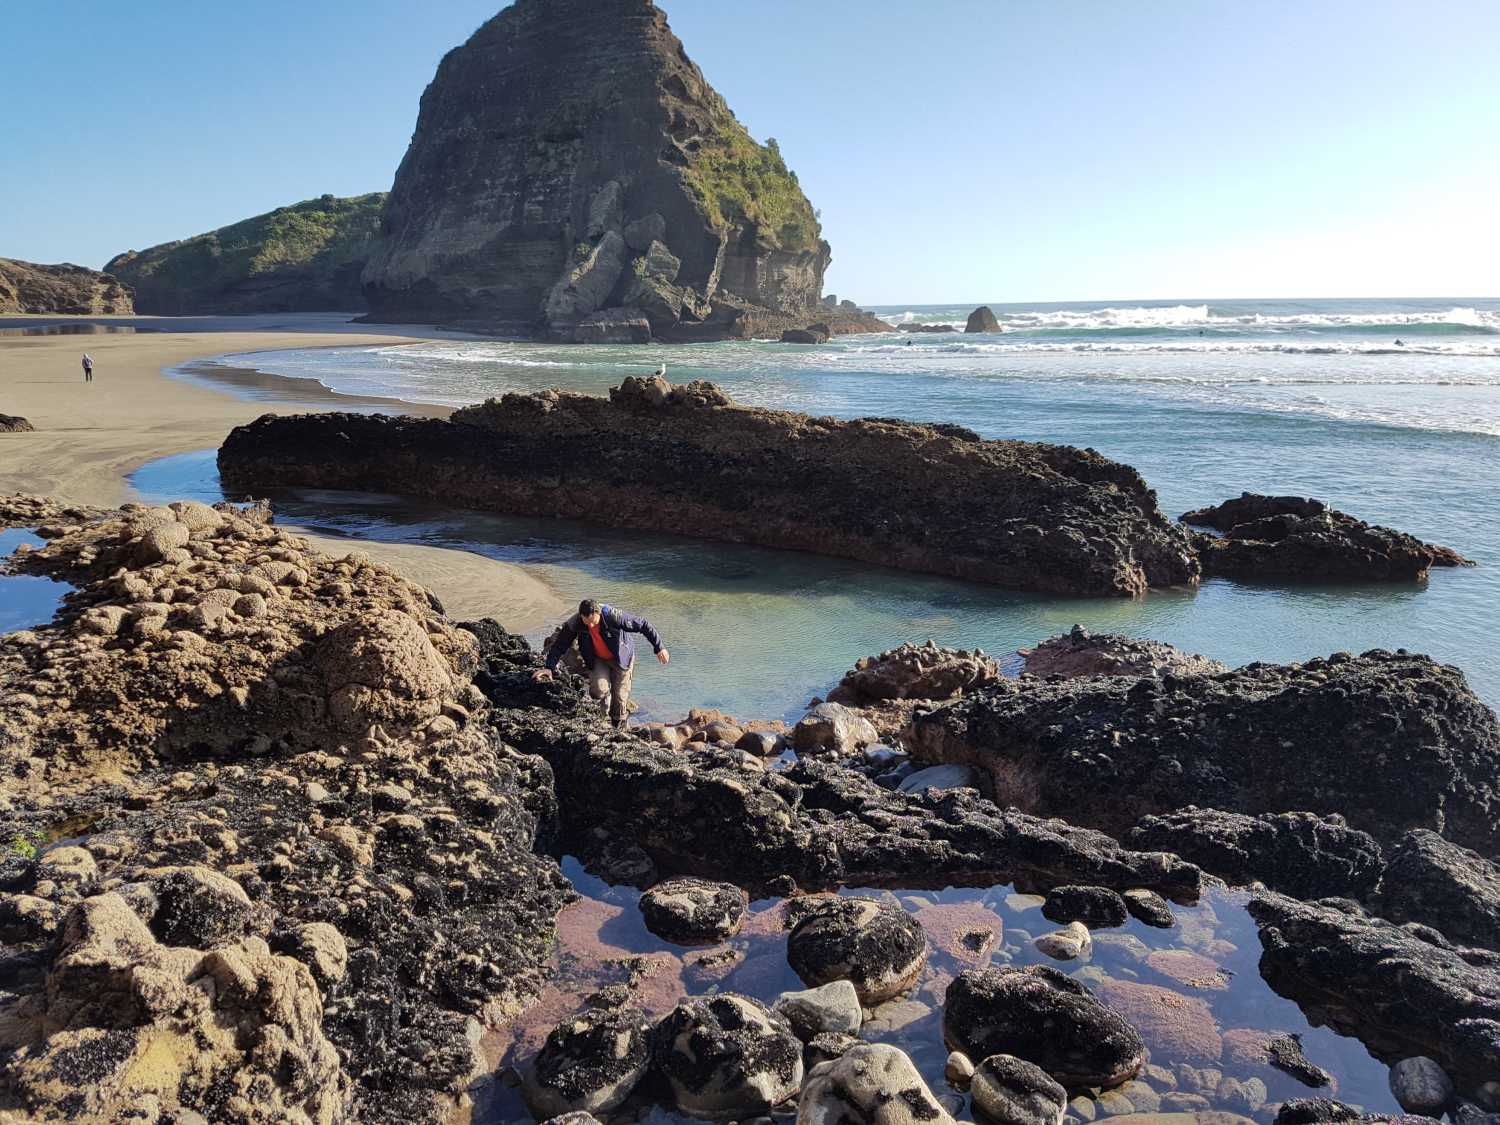 Tour group explores rock pools at Piha Beach